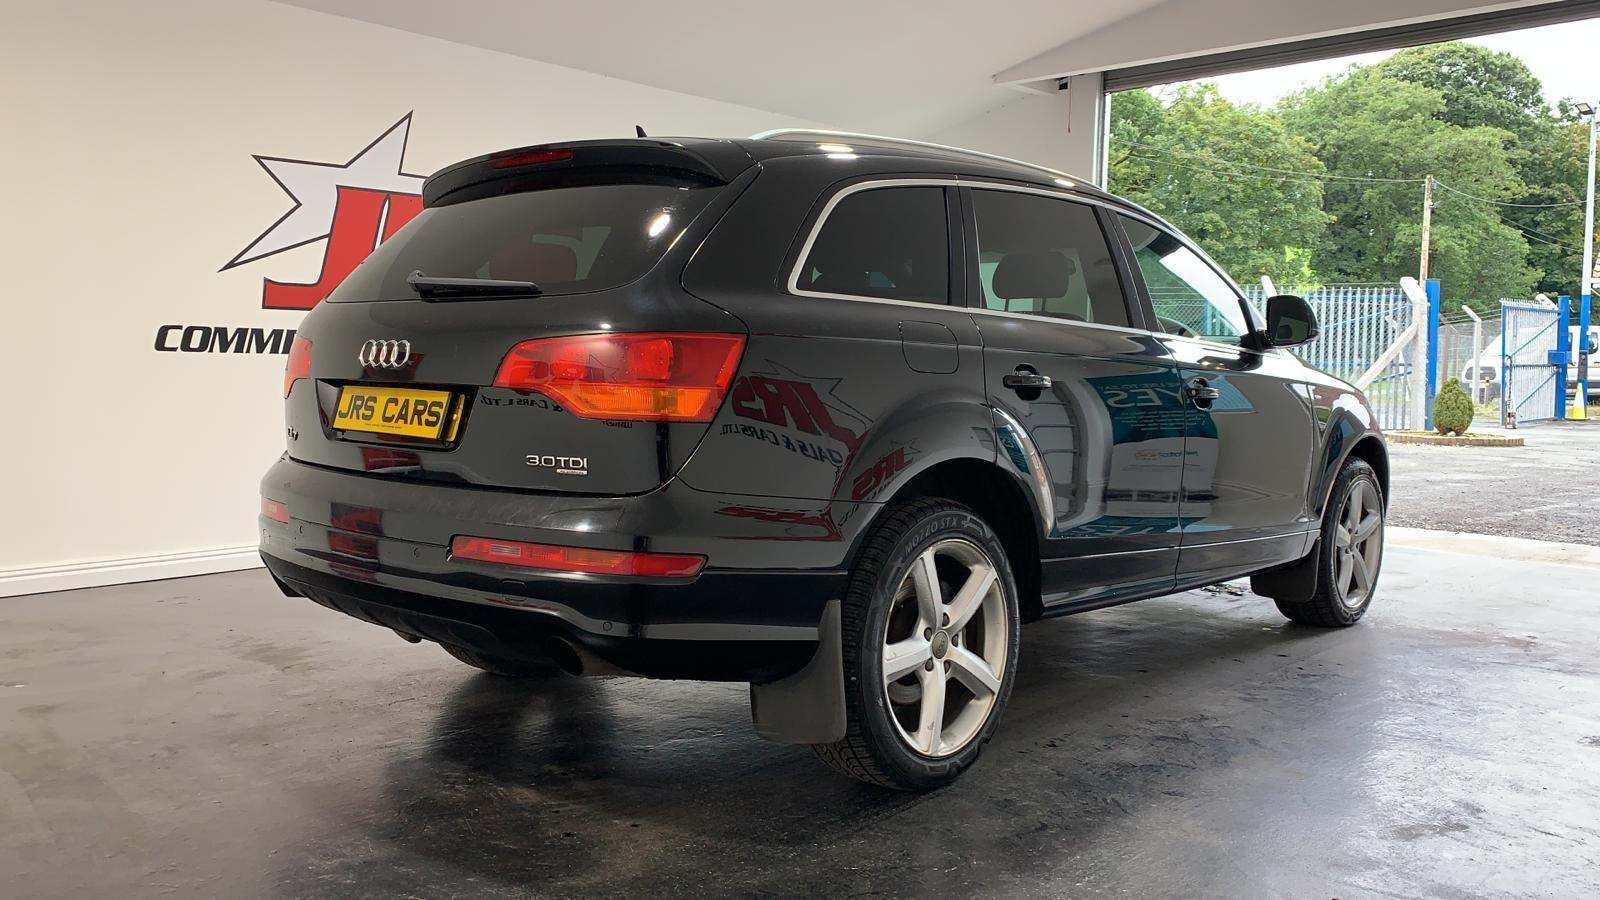 2007 AUDI Q7 3.0 TDI S line Tiptronic quattro Diesel Automatic *Bose Speakers -Heated Seats* – J R S Commercials And Cars Dungannon full